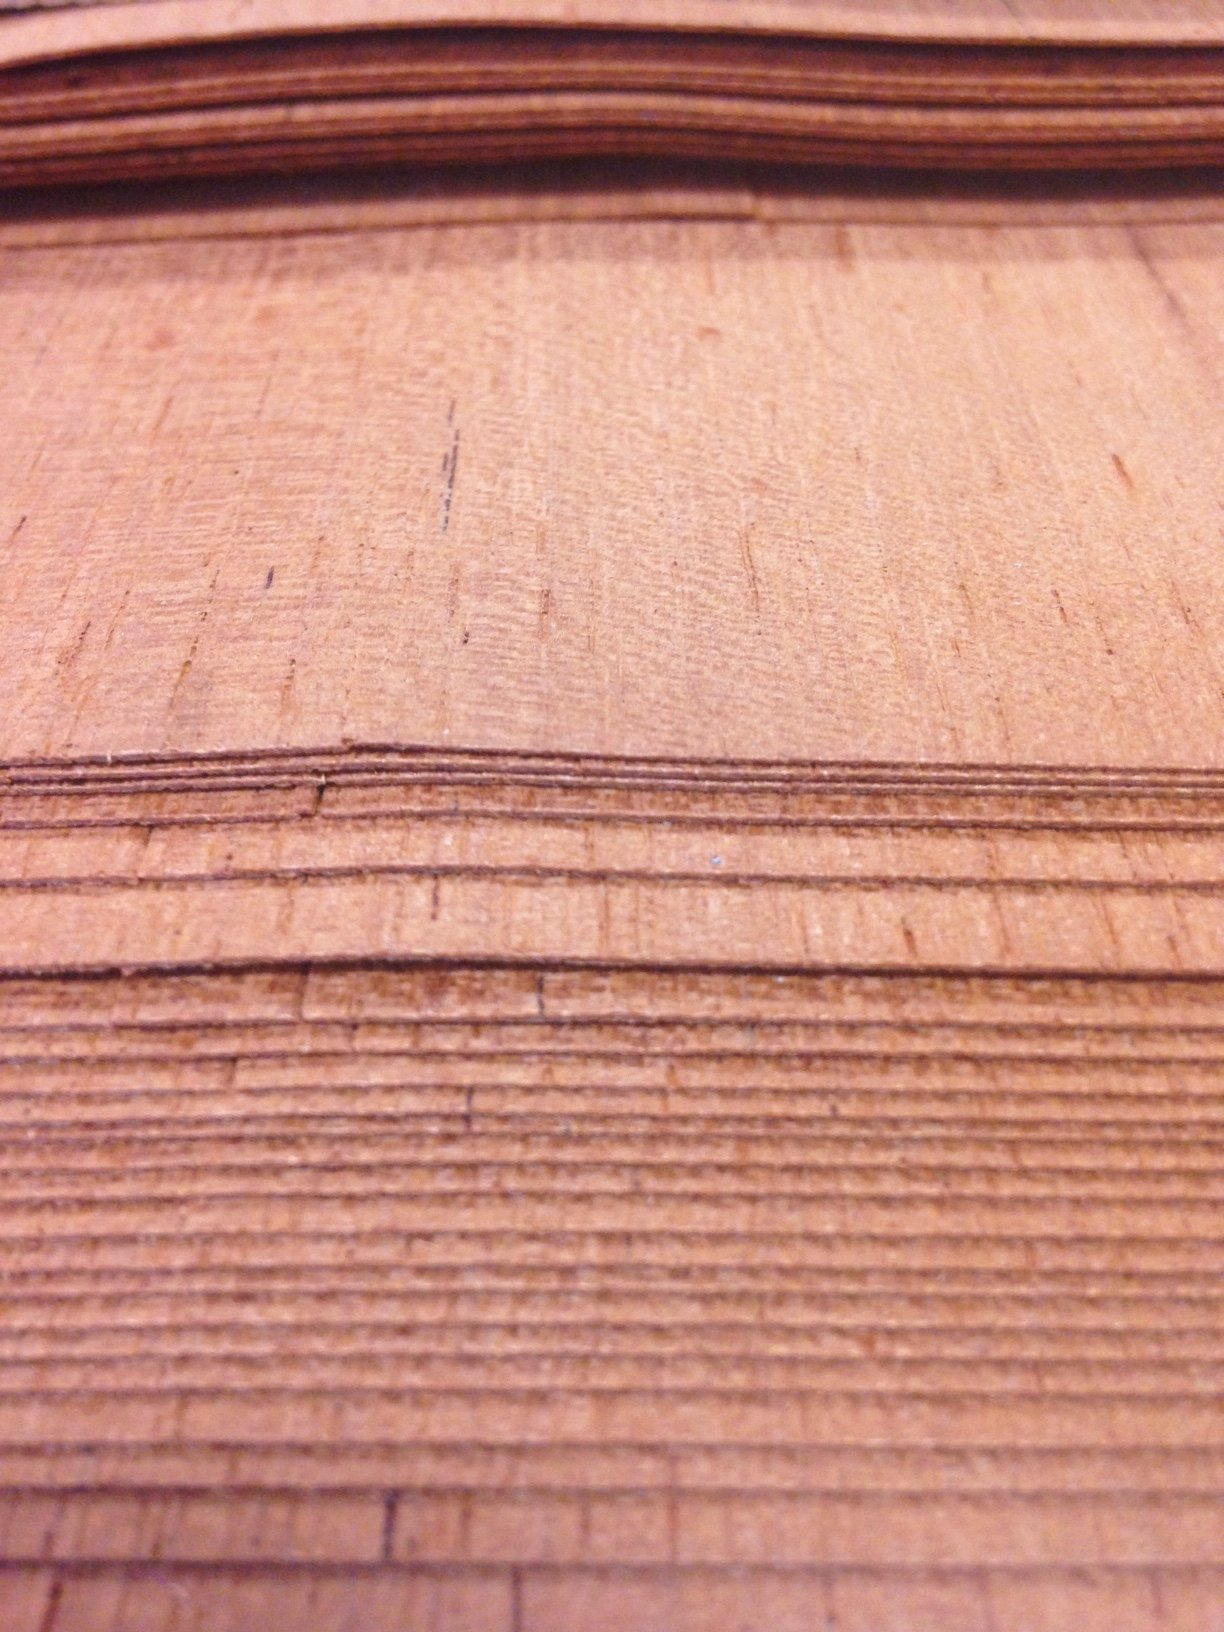 Spanish Cedar Veneer, 12 Sq. Ft, Premium Grade A raw Wood